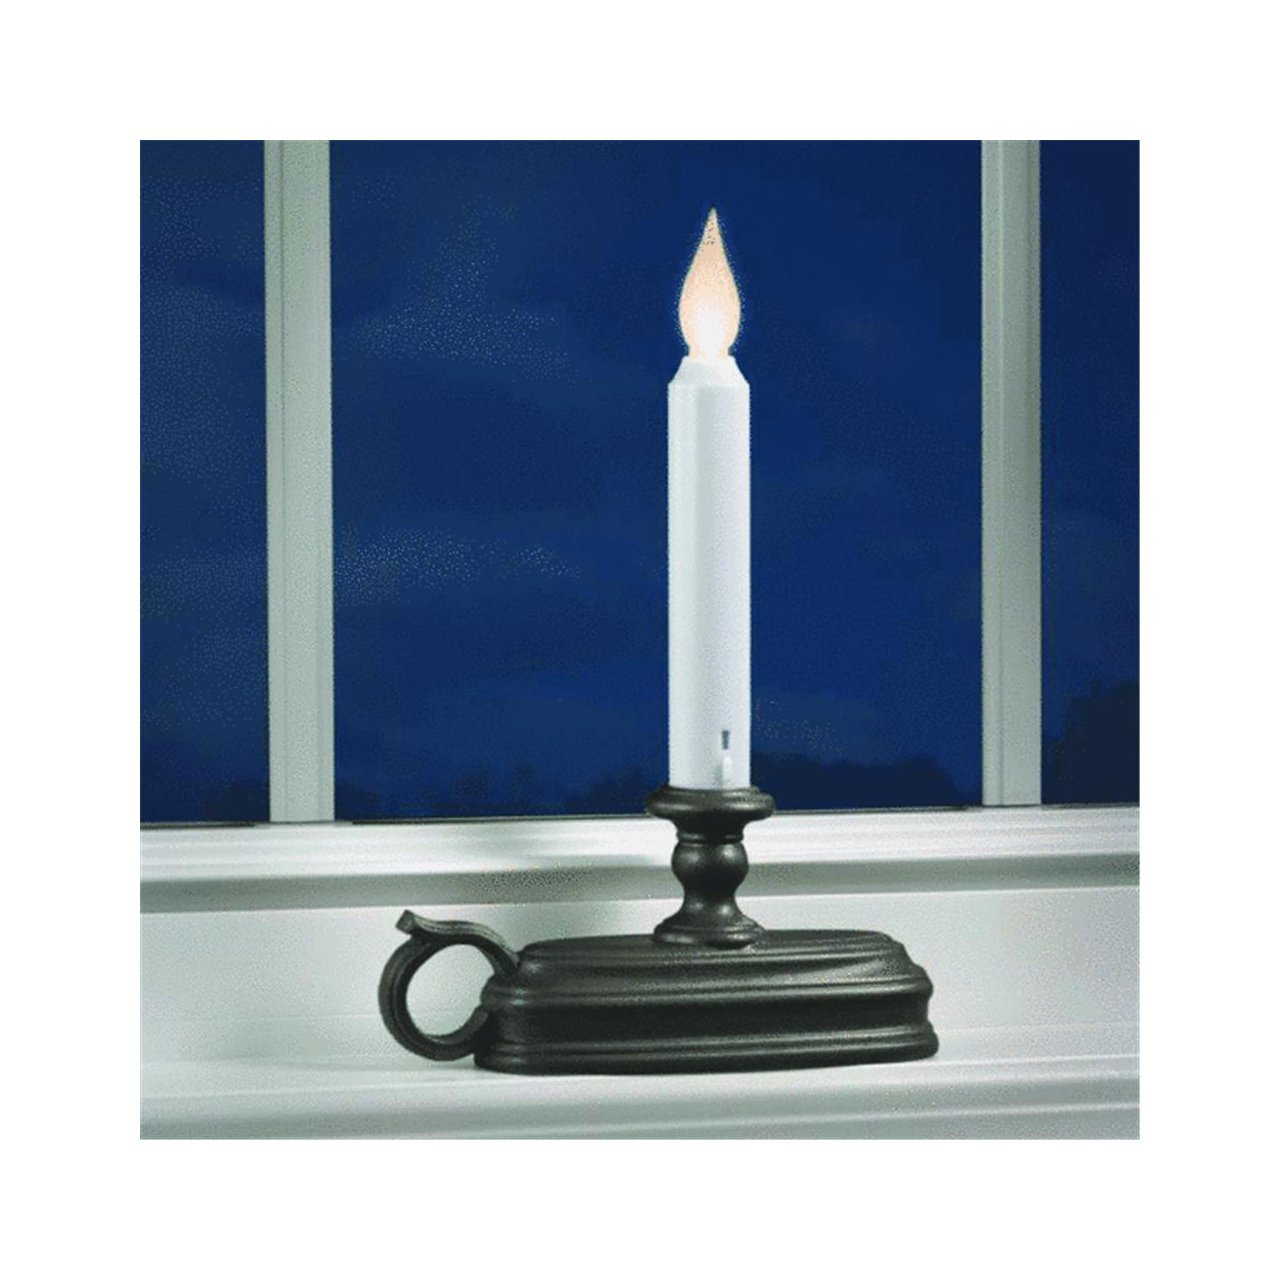 FPC1525A Battery Operated LED Window Candle with Sensor, Black, Large BaseThree settings: off, on (flickering), on (steady burning) By Xodus Innovations